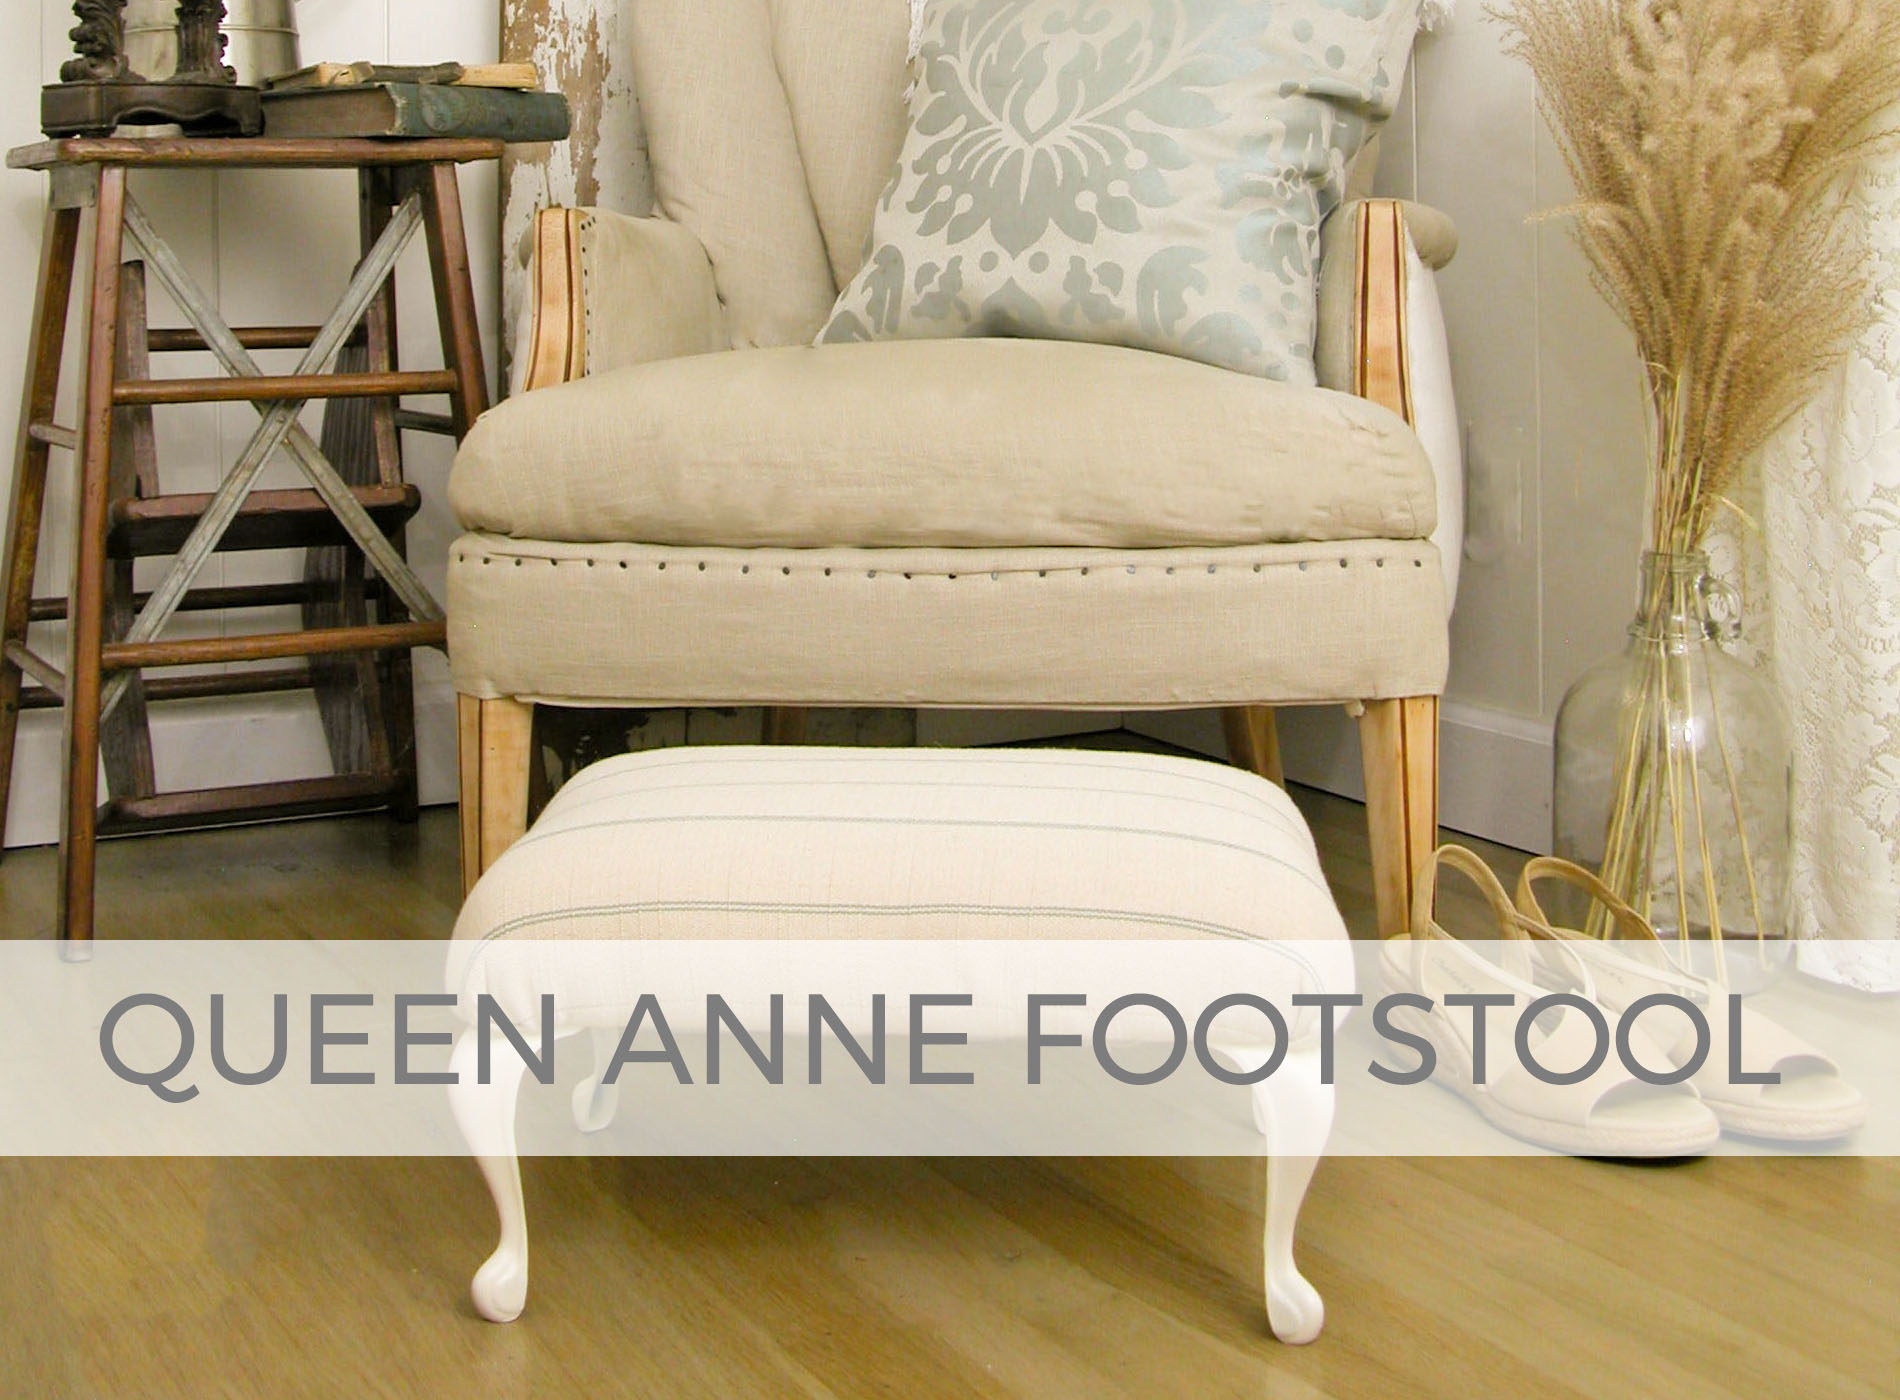 Queen Anne Footstool by Larissa of Prodigal Pieces | prodigalpieces.com